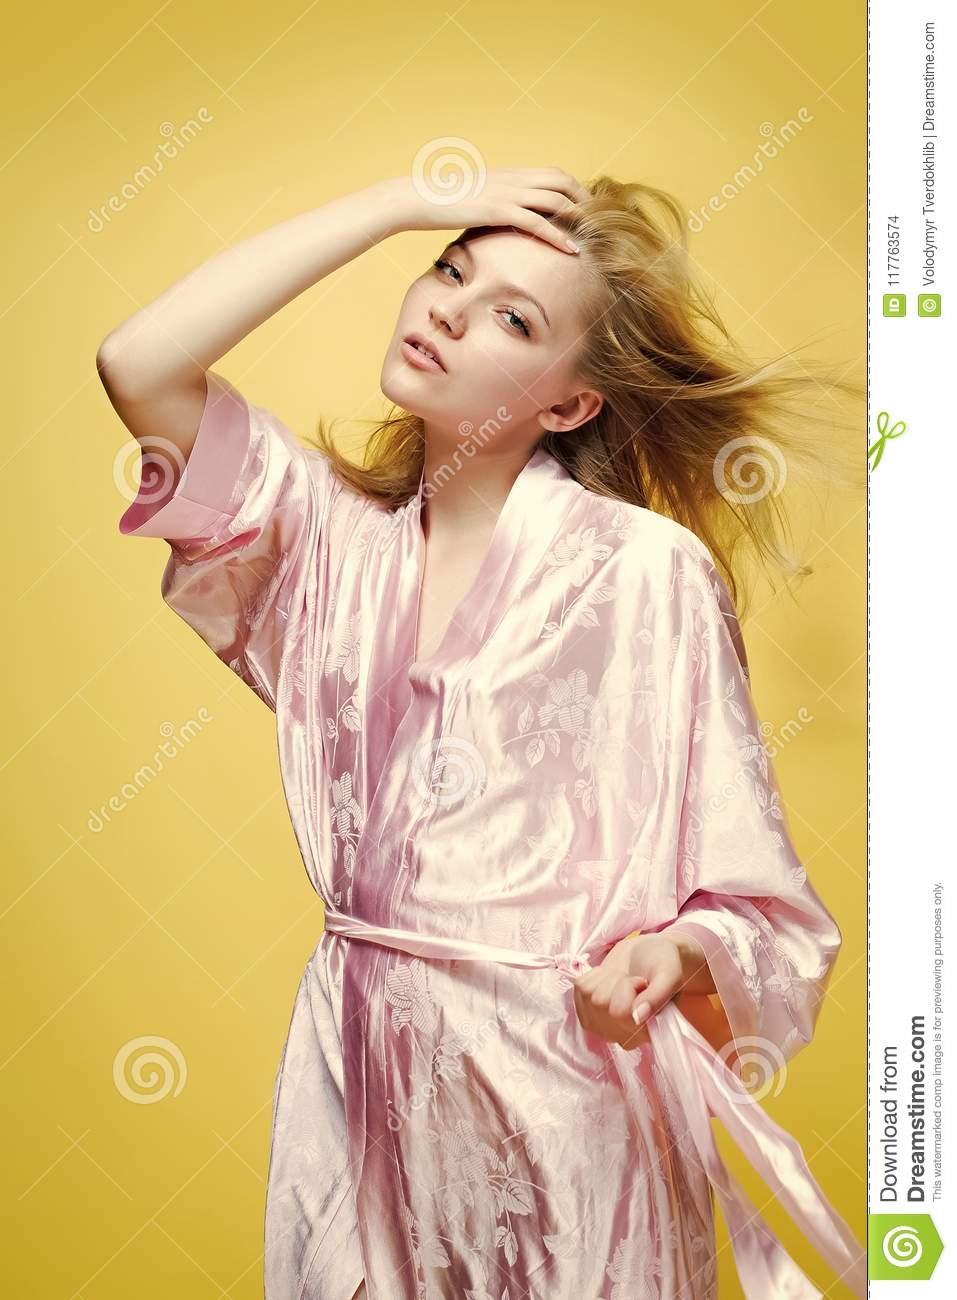 Sensual Woman Body. Lady In Dressing Gown Stock Photo - Image of ...